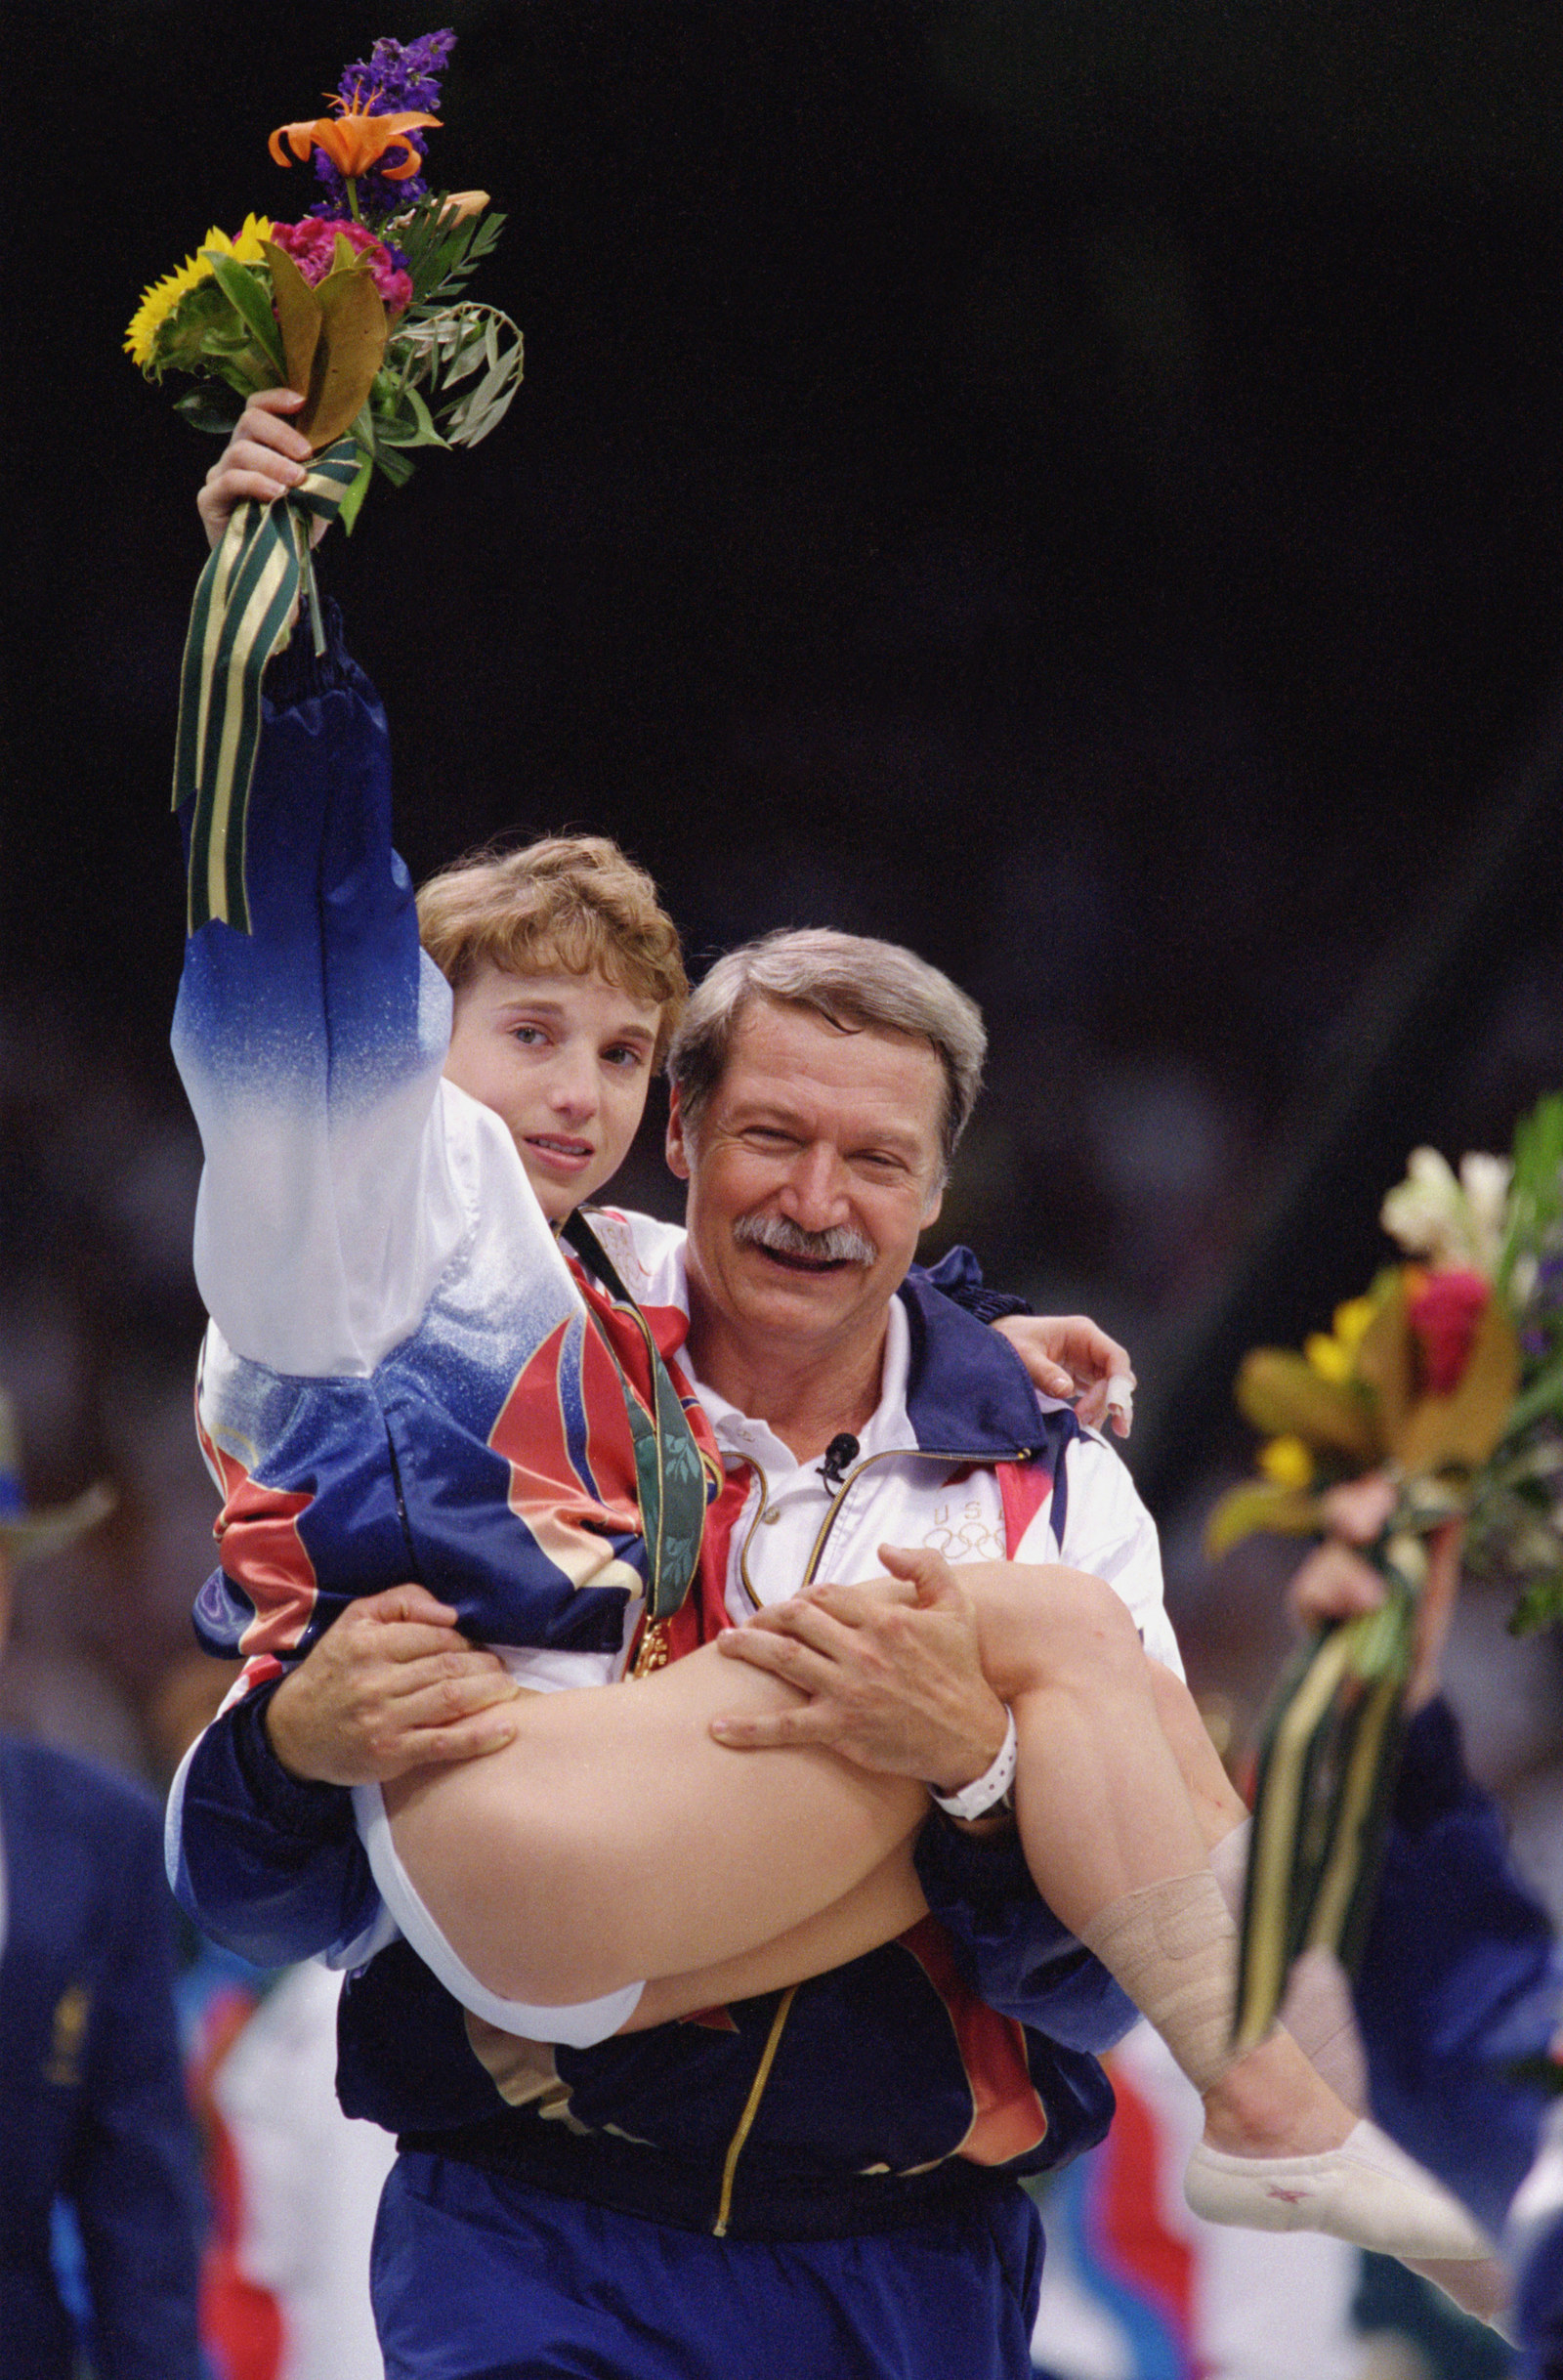 Kerri Strug being carried off the floor by her couch